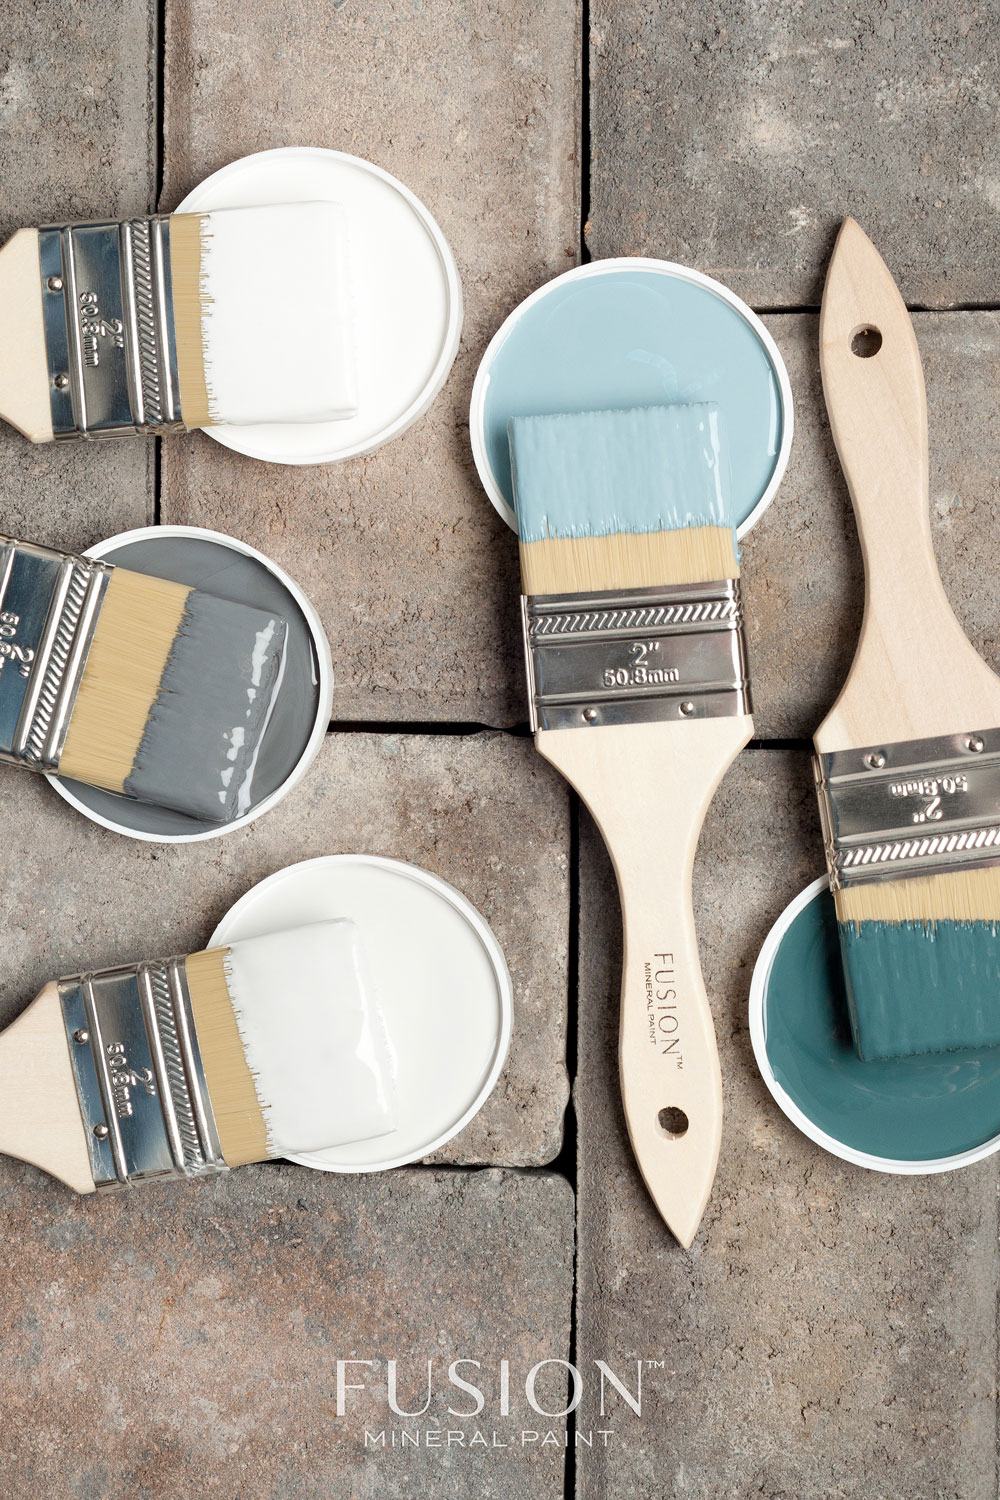 Fusion Mineral Paint - great colour combinations using Homestead Blue, Champness, Picket Fence, Soapstone and Lamp White